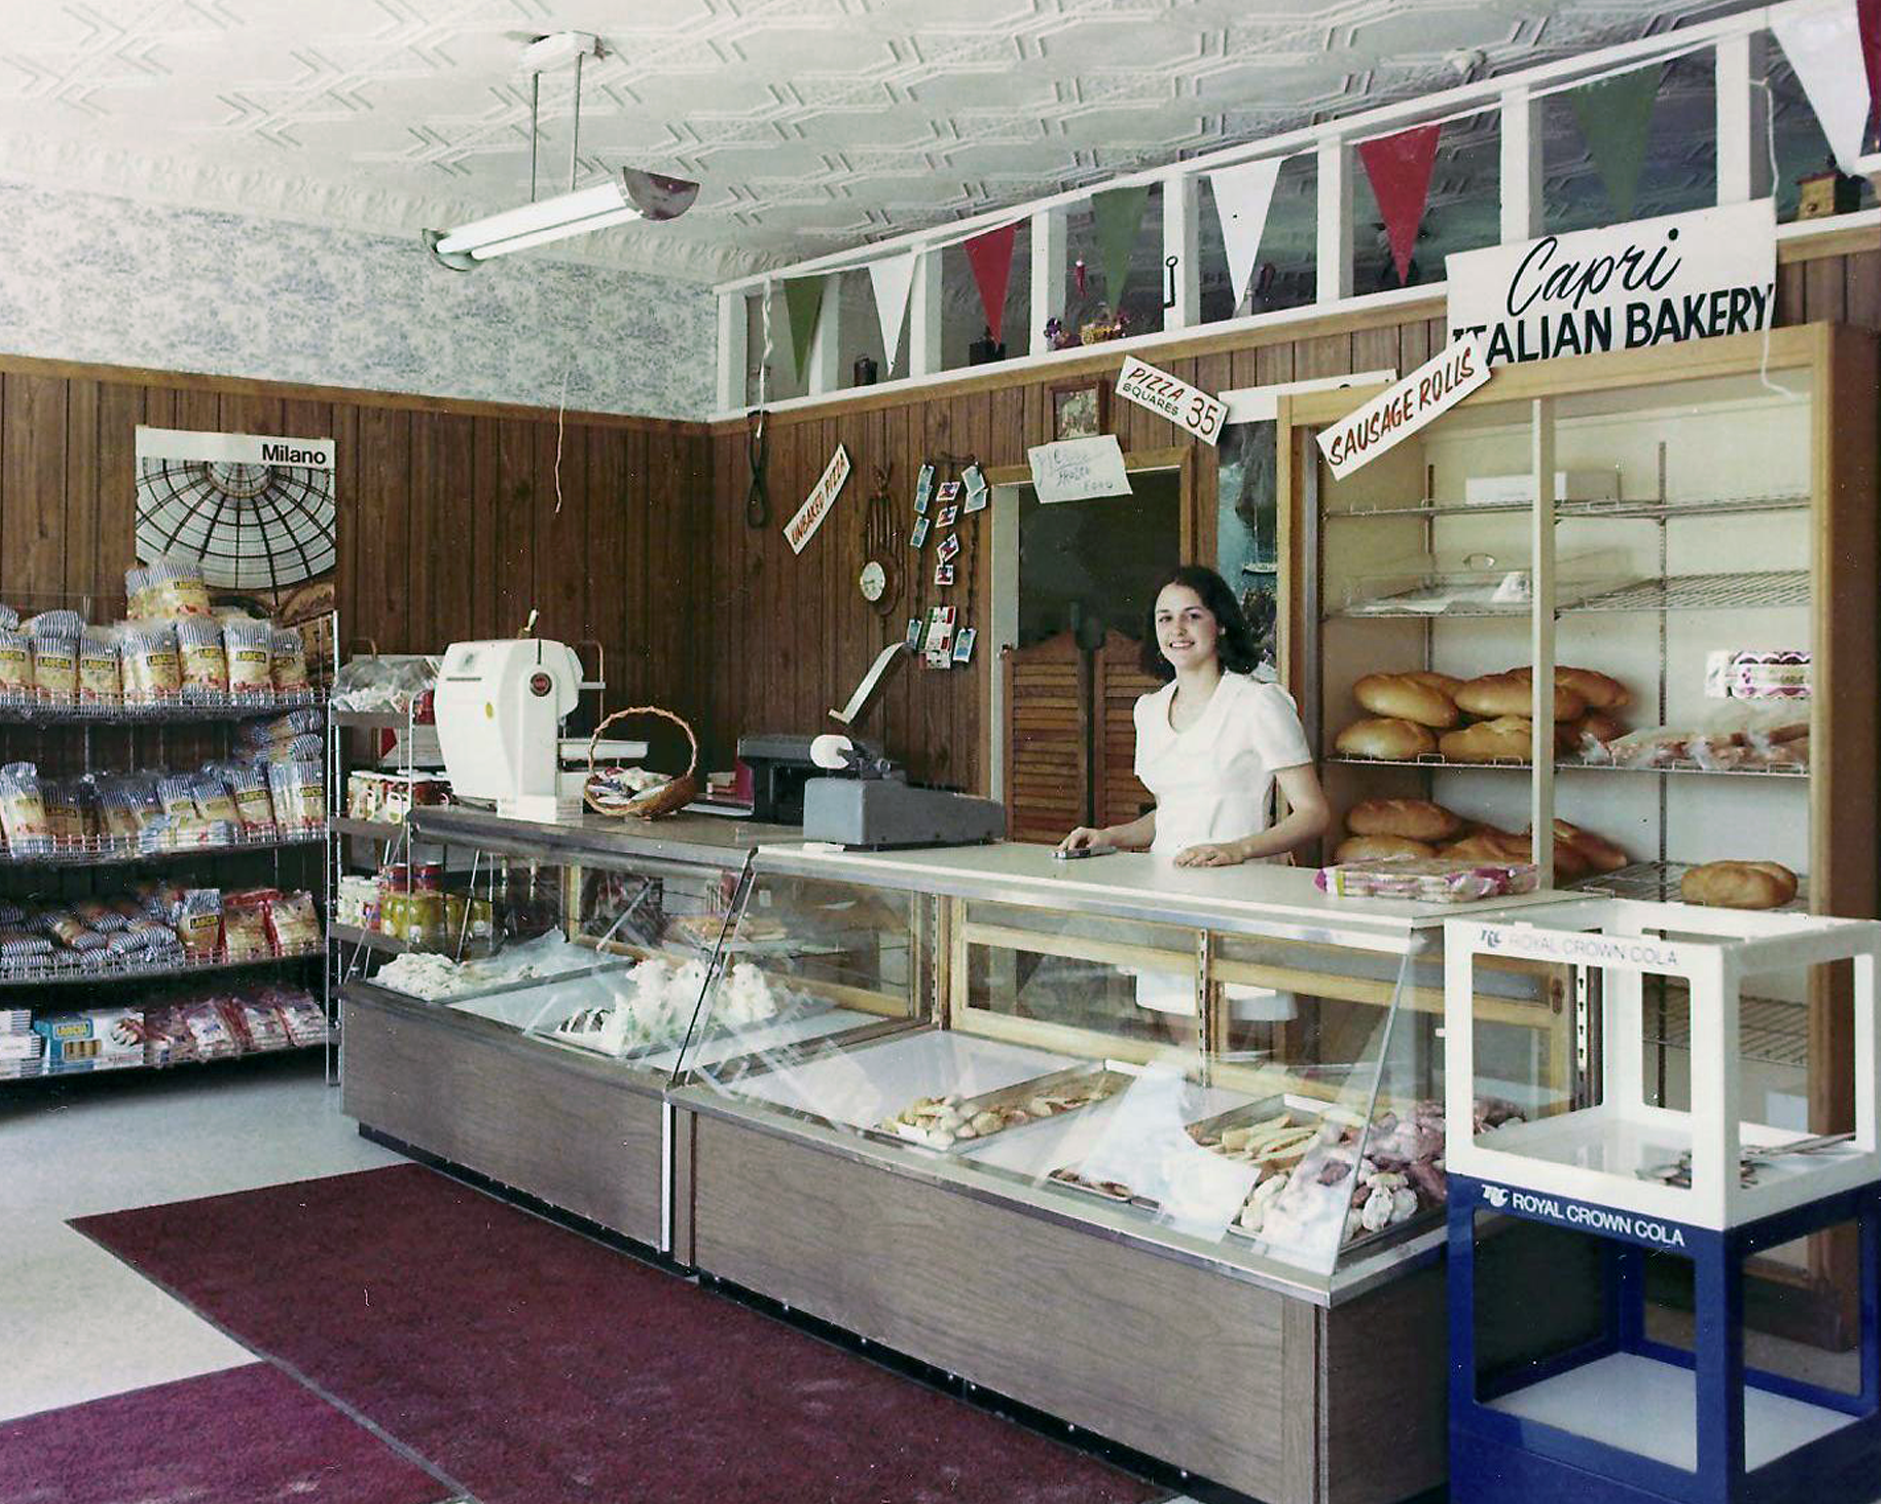 dearborn office display case. virginia added pizza and the now famous pepperoni rolls to her product line one of john virginiau0027s four children jr worked part time help dearborn office display case